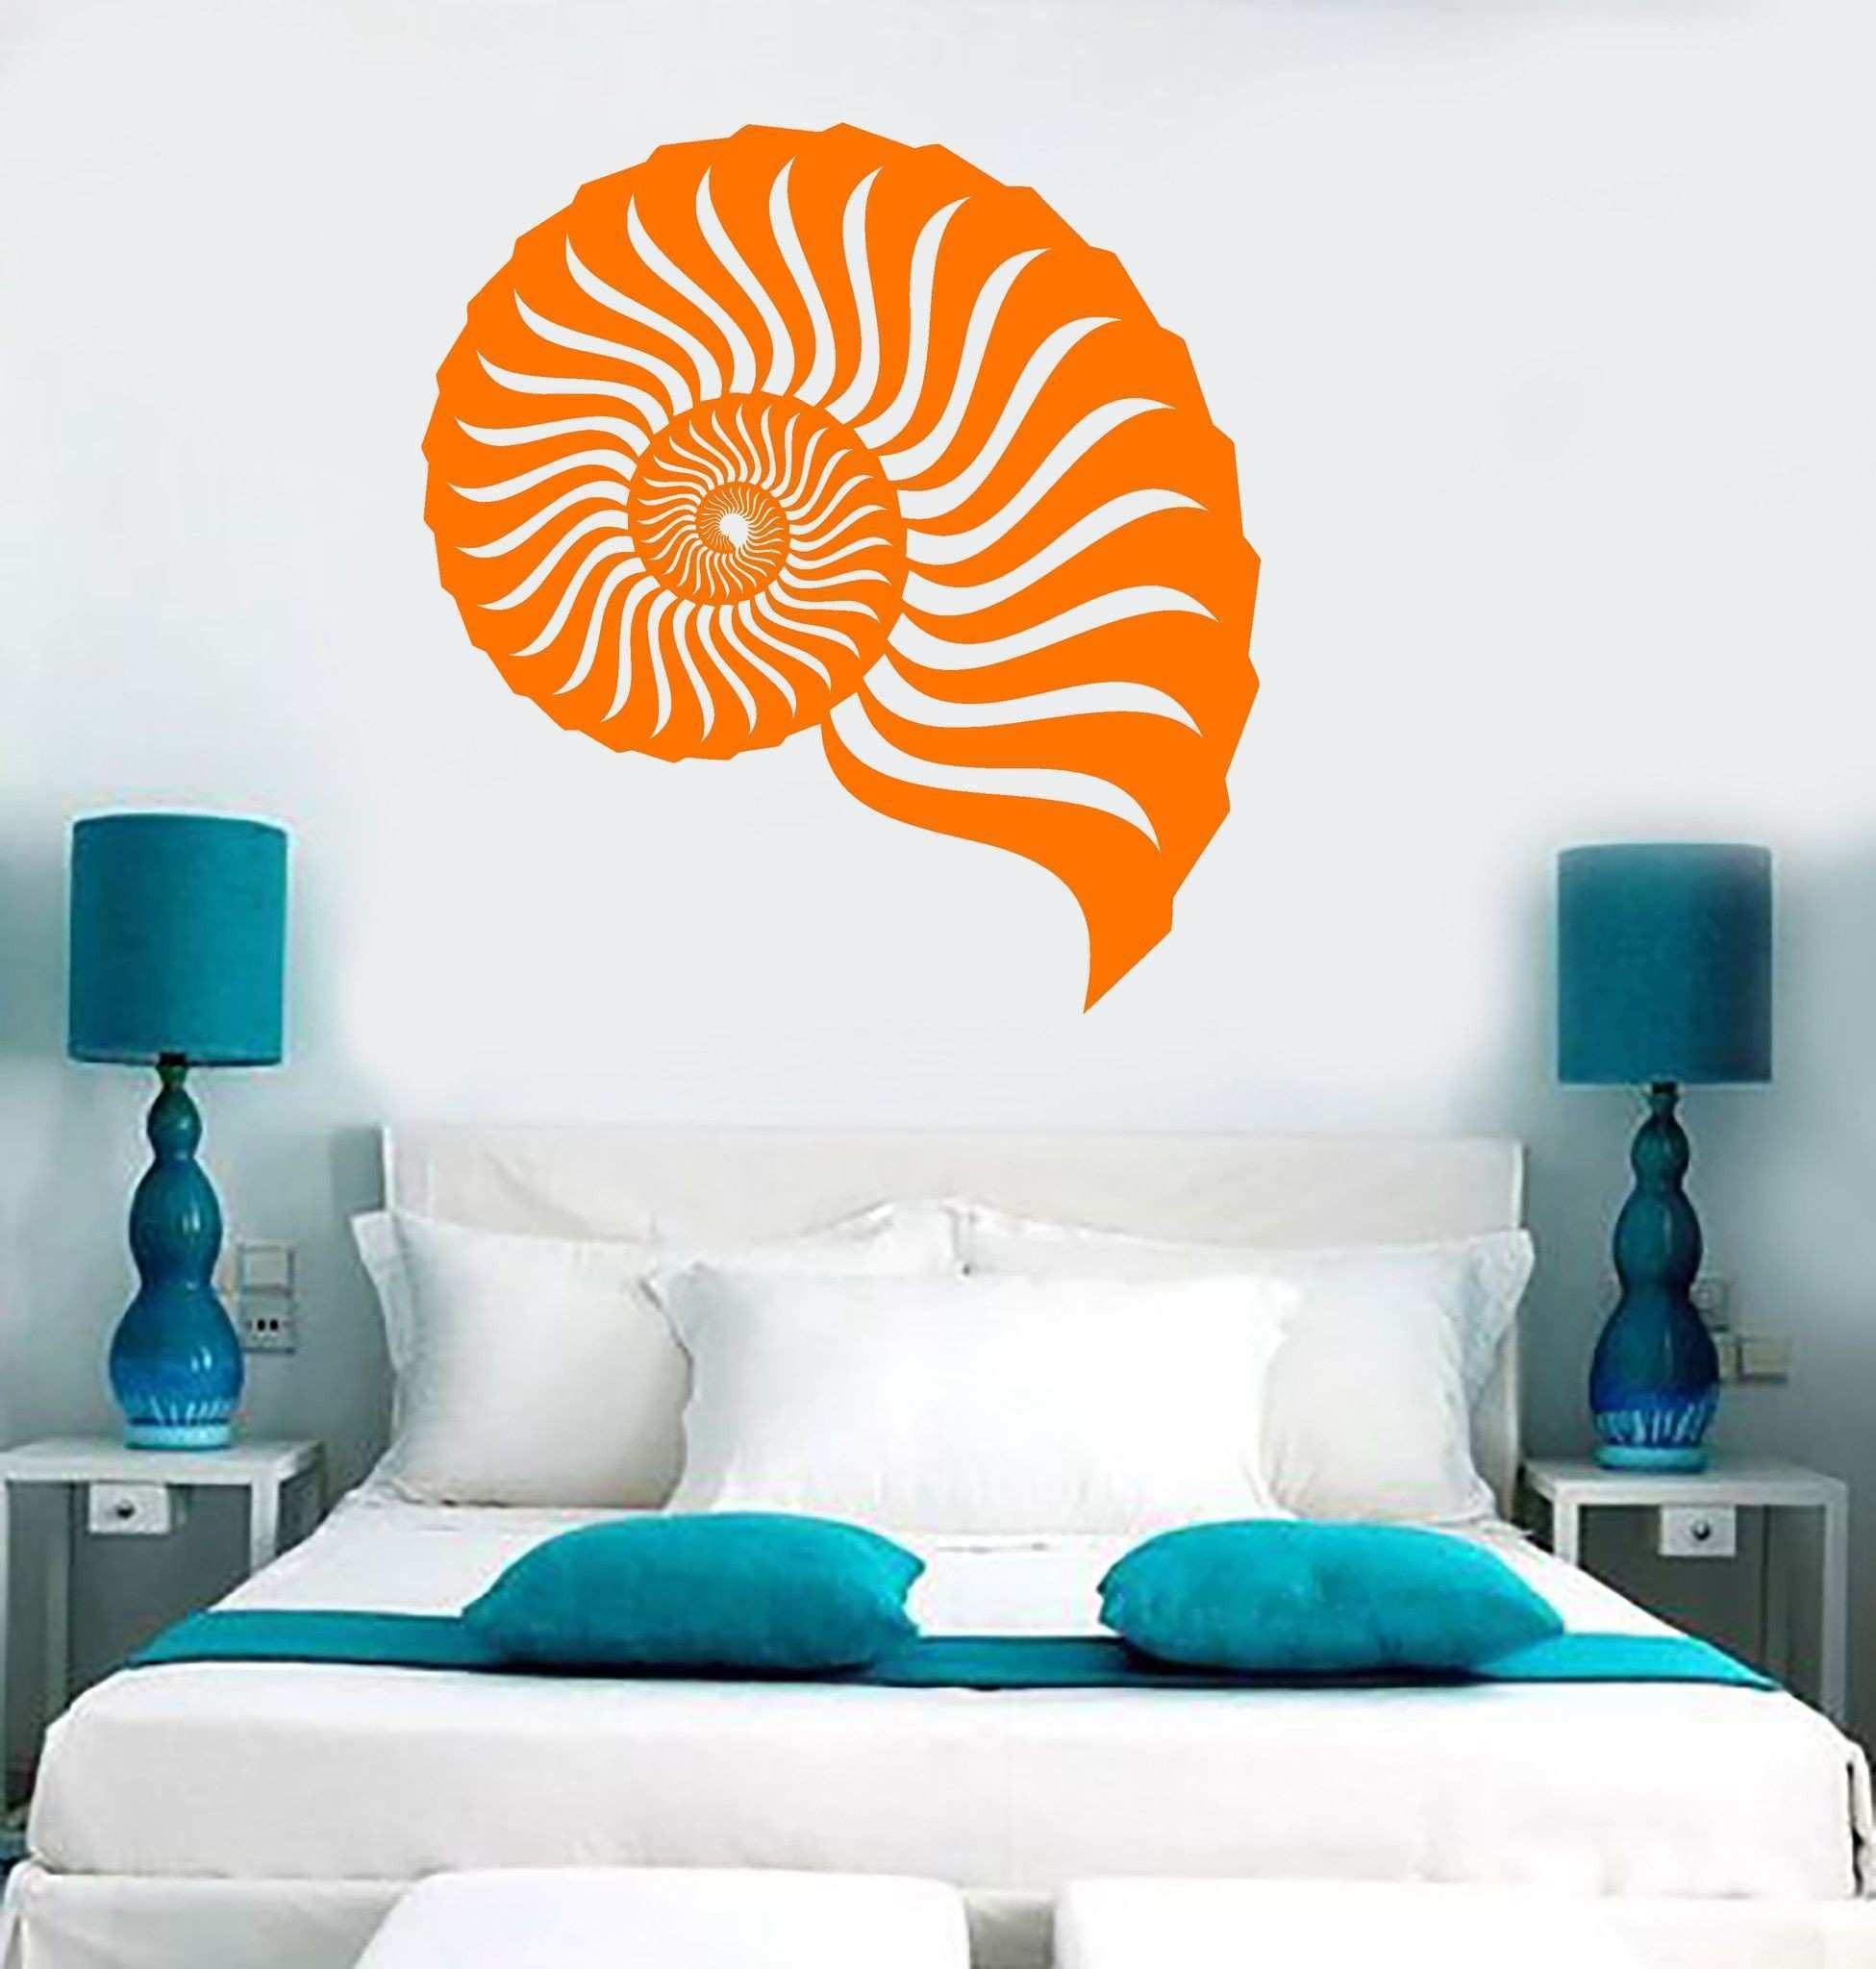 Vinyl Wall Decal Seashell Marine Sea Beach Style Room Stickers